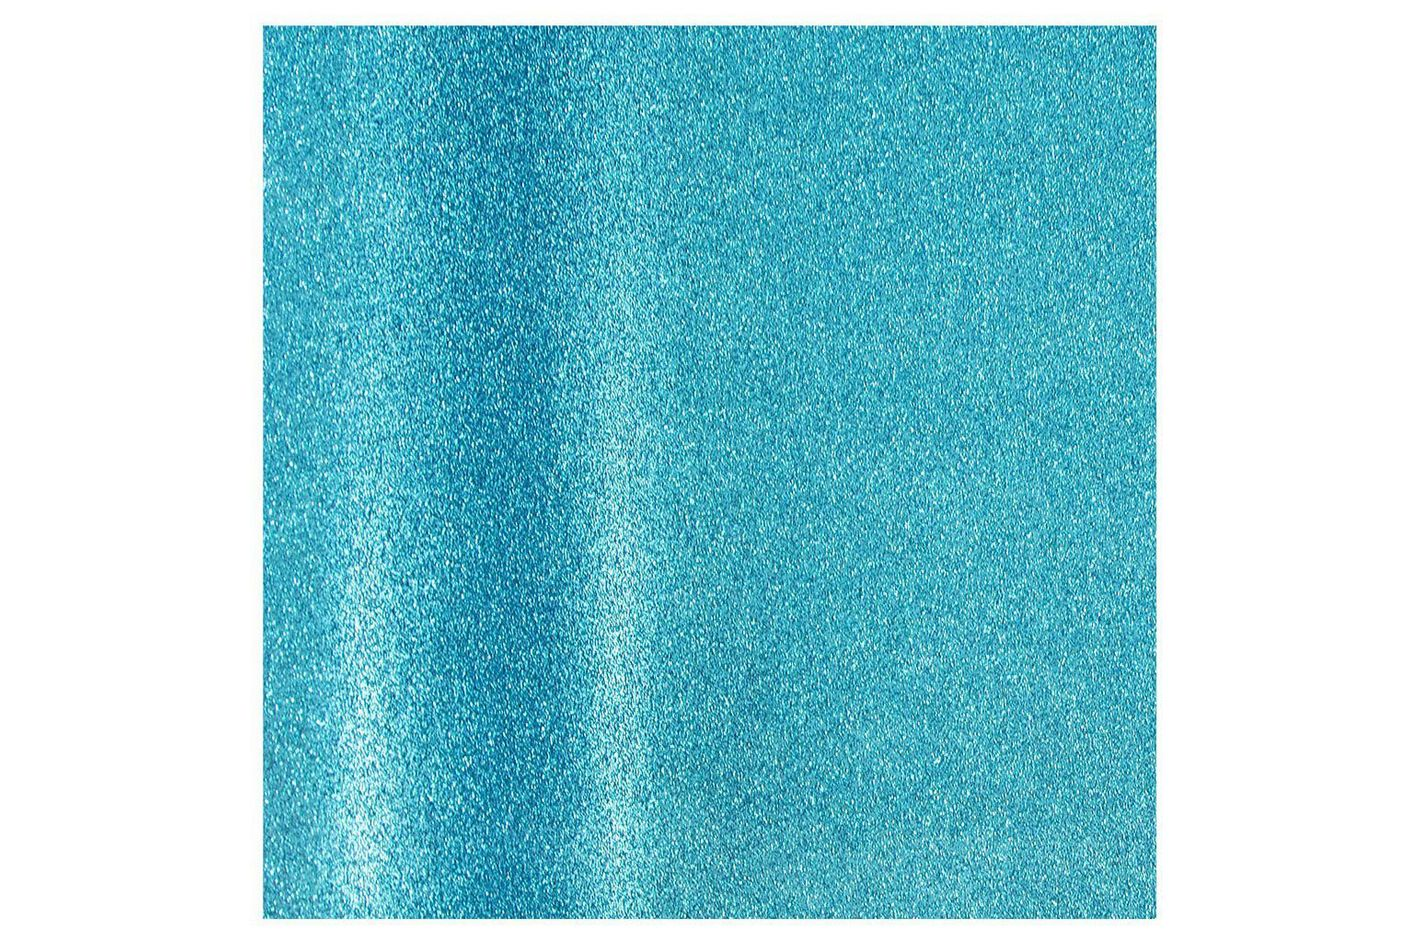 Aqua Blue Glitter Gift-Wrapping Paper